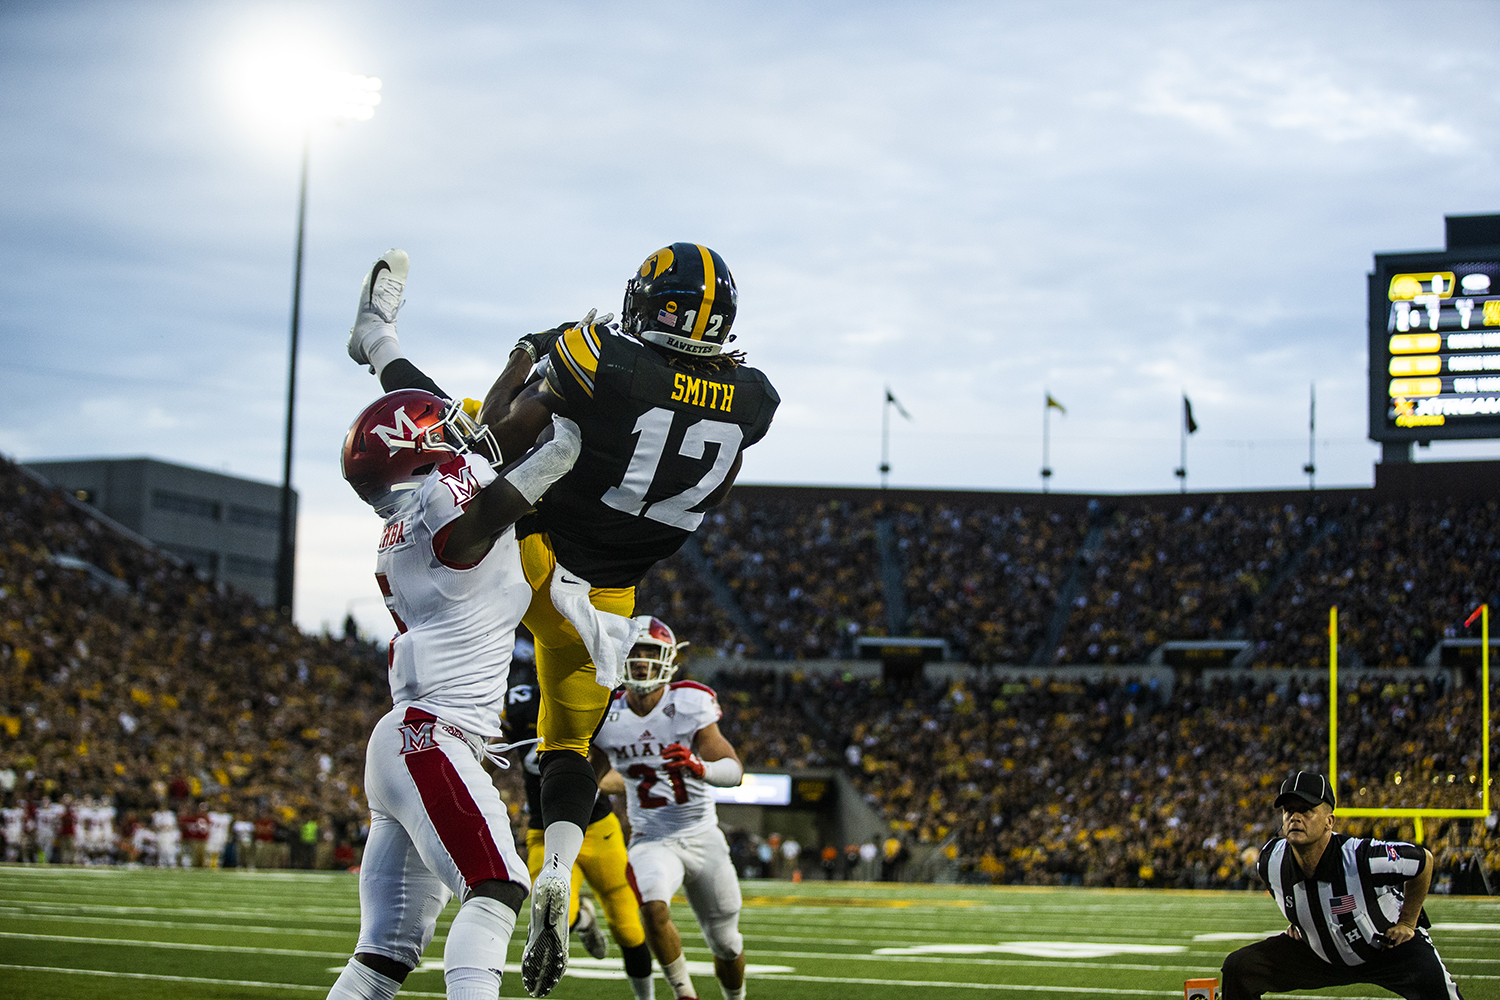 Iowa+wide+receiver+Brandon+Smith+catches+an+out+of+bounds+pass+during+the+Iowa+football+game+against+Miami+%28Ohio%29+at+Kinnick+Stadium+on+Saturday%2C+August+31%2C+2019.+The+Hawkeyes+defeated+the+Redhawks+38-14.